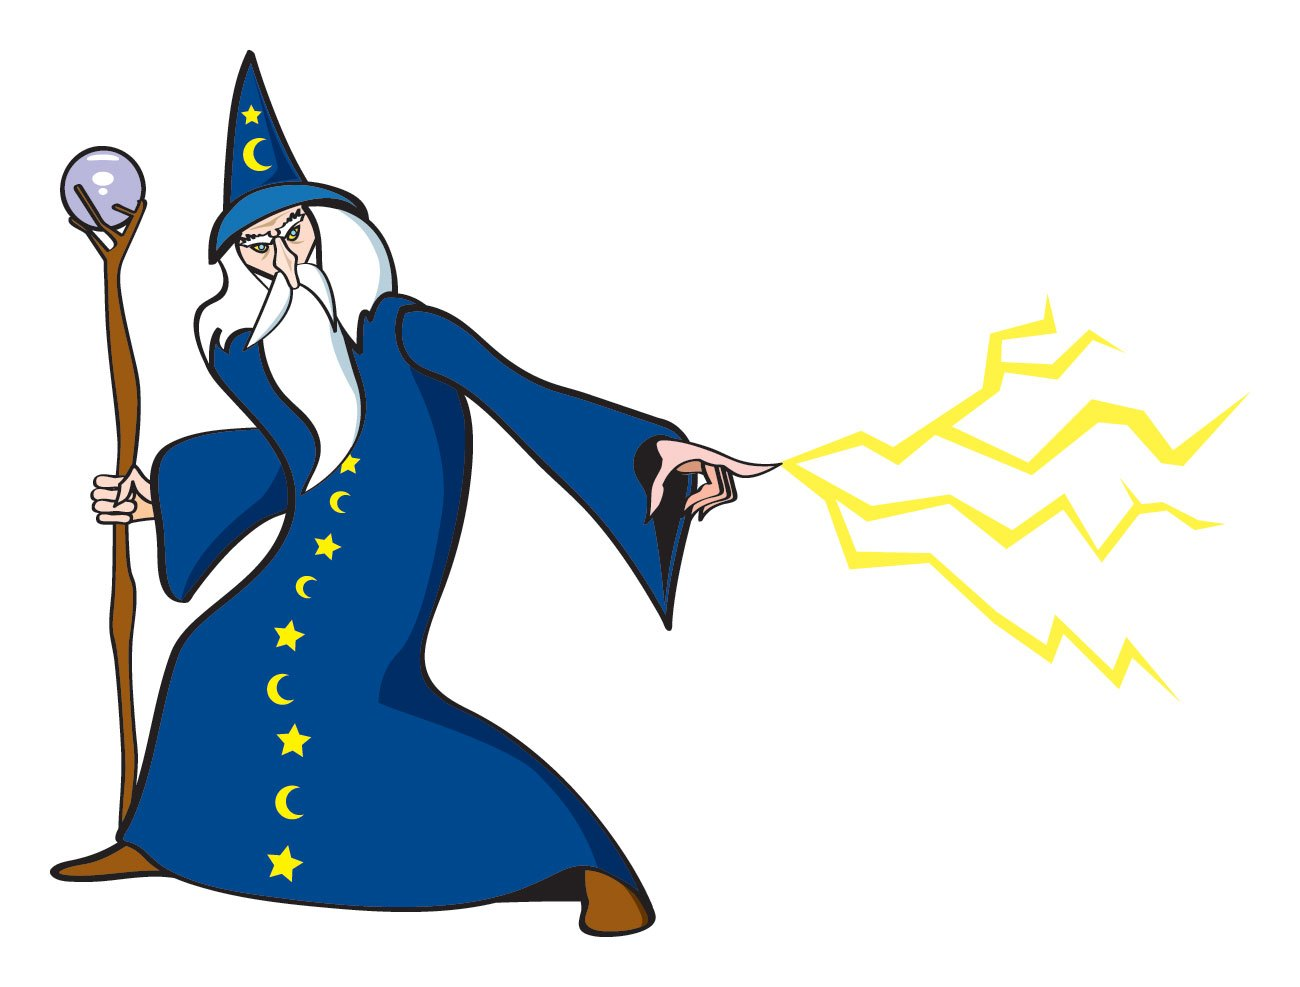 Clipart wizards graphic library stock Wizards clipart 5 » Clipart Portal graphic library stock